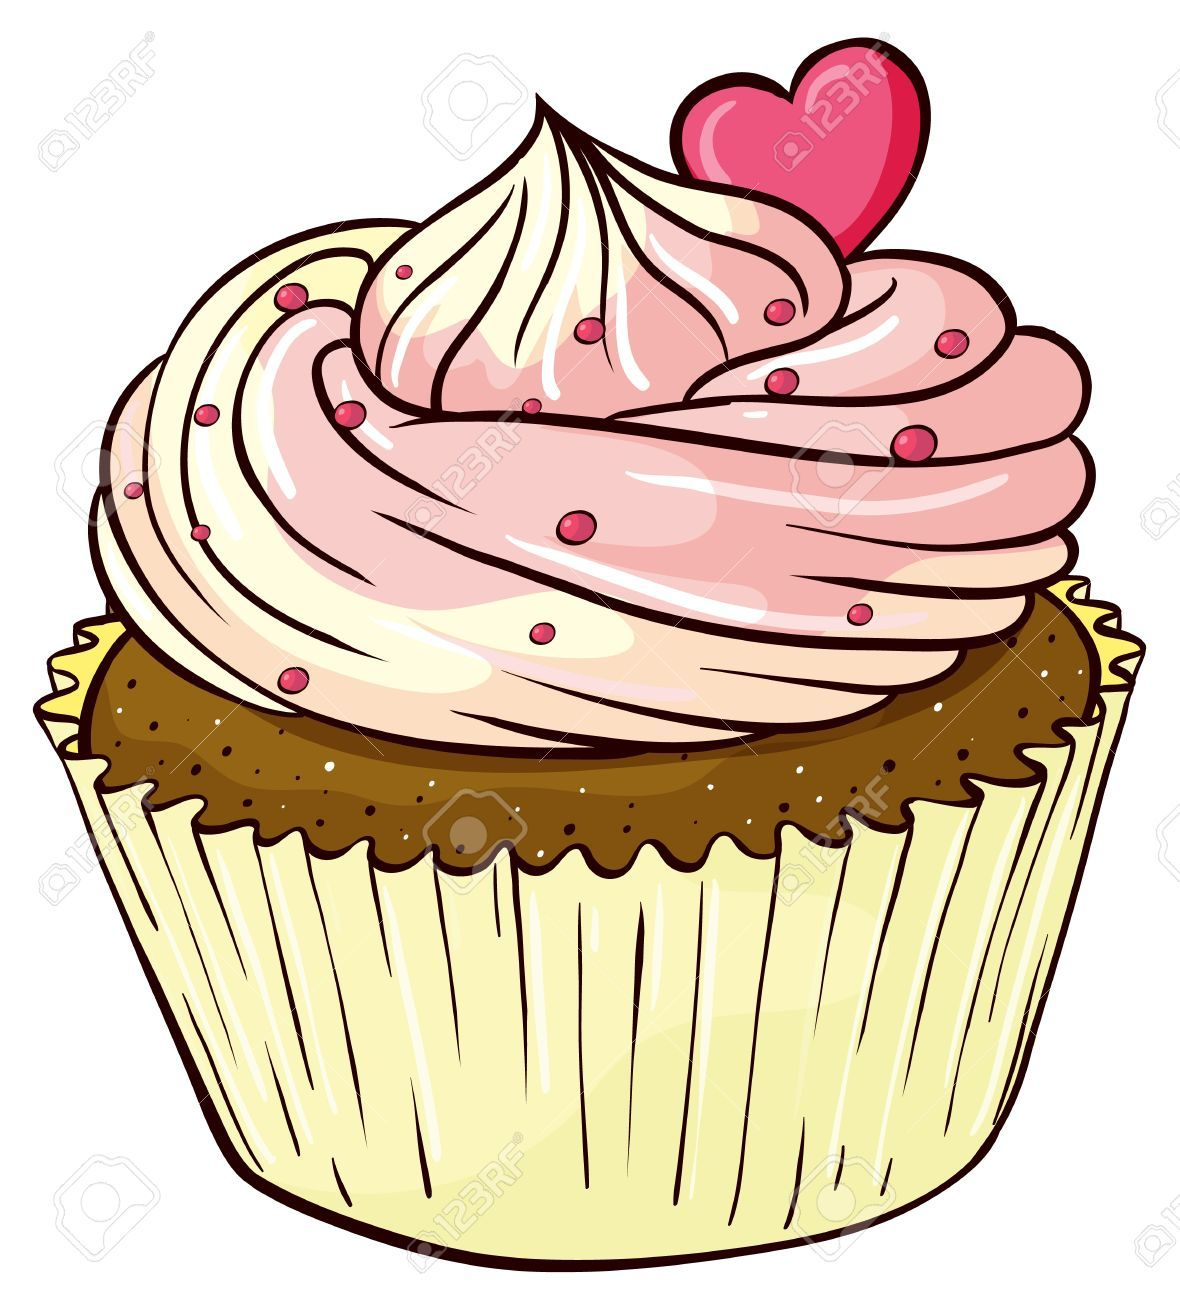 medium resolution of cupcake clipart stock photos images royalty free cupcake clipart